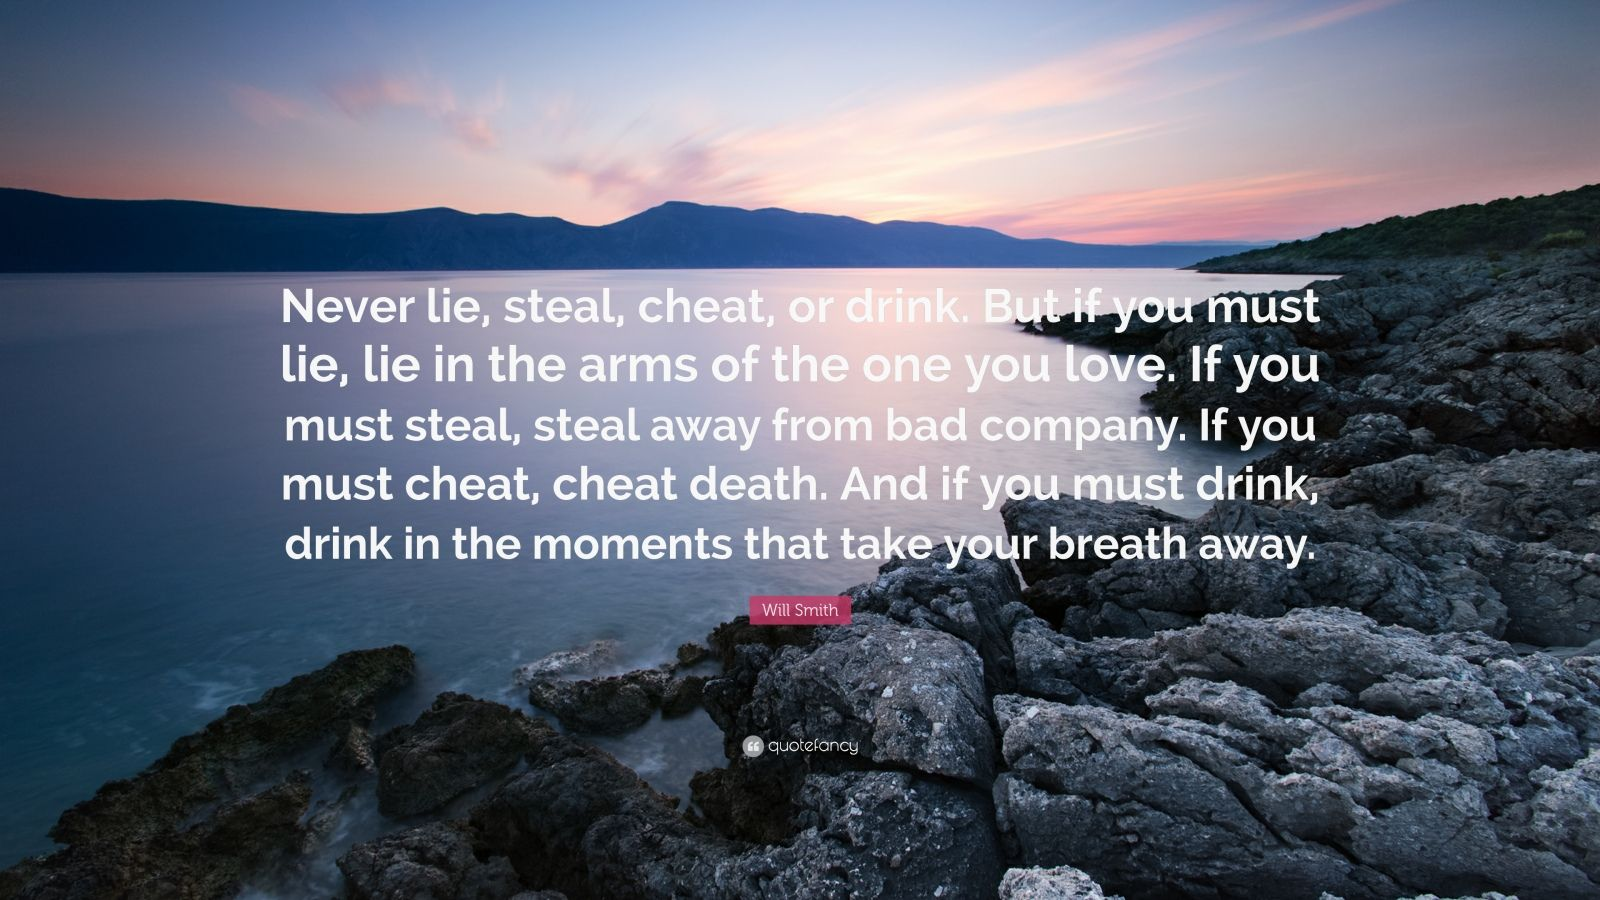 Will Smith Quote: U201cNever Lie, Steal, Cheat, Or Drink. But